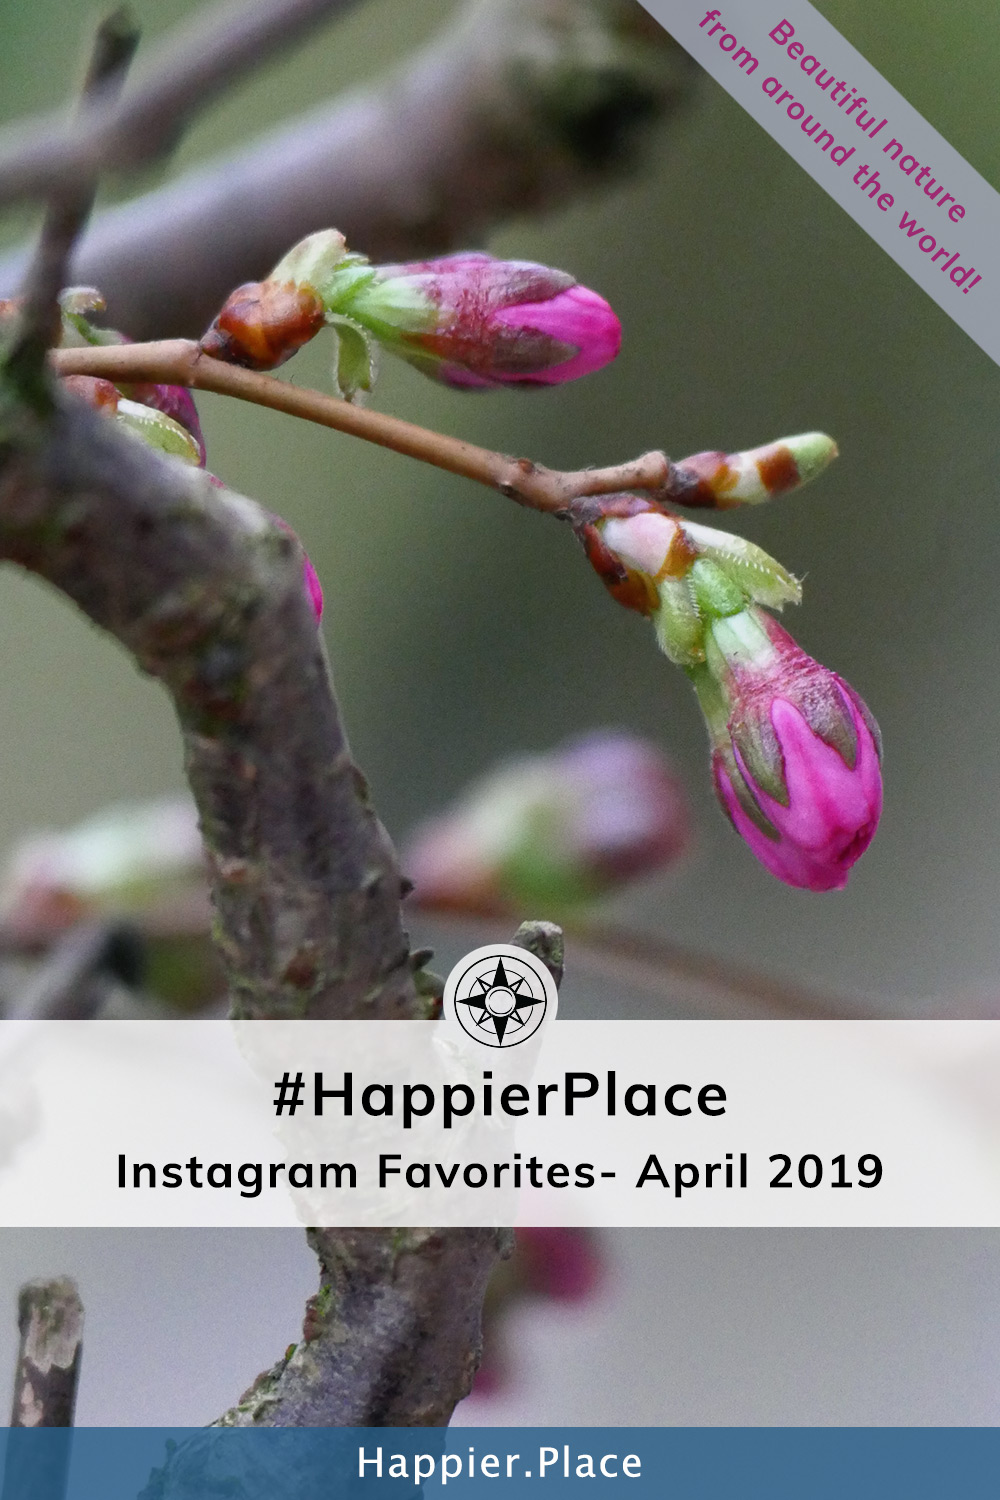 #HappierPlace Instagram Favorites: April 2019